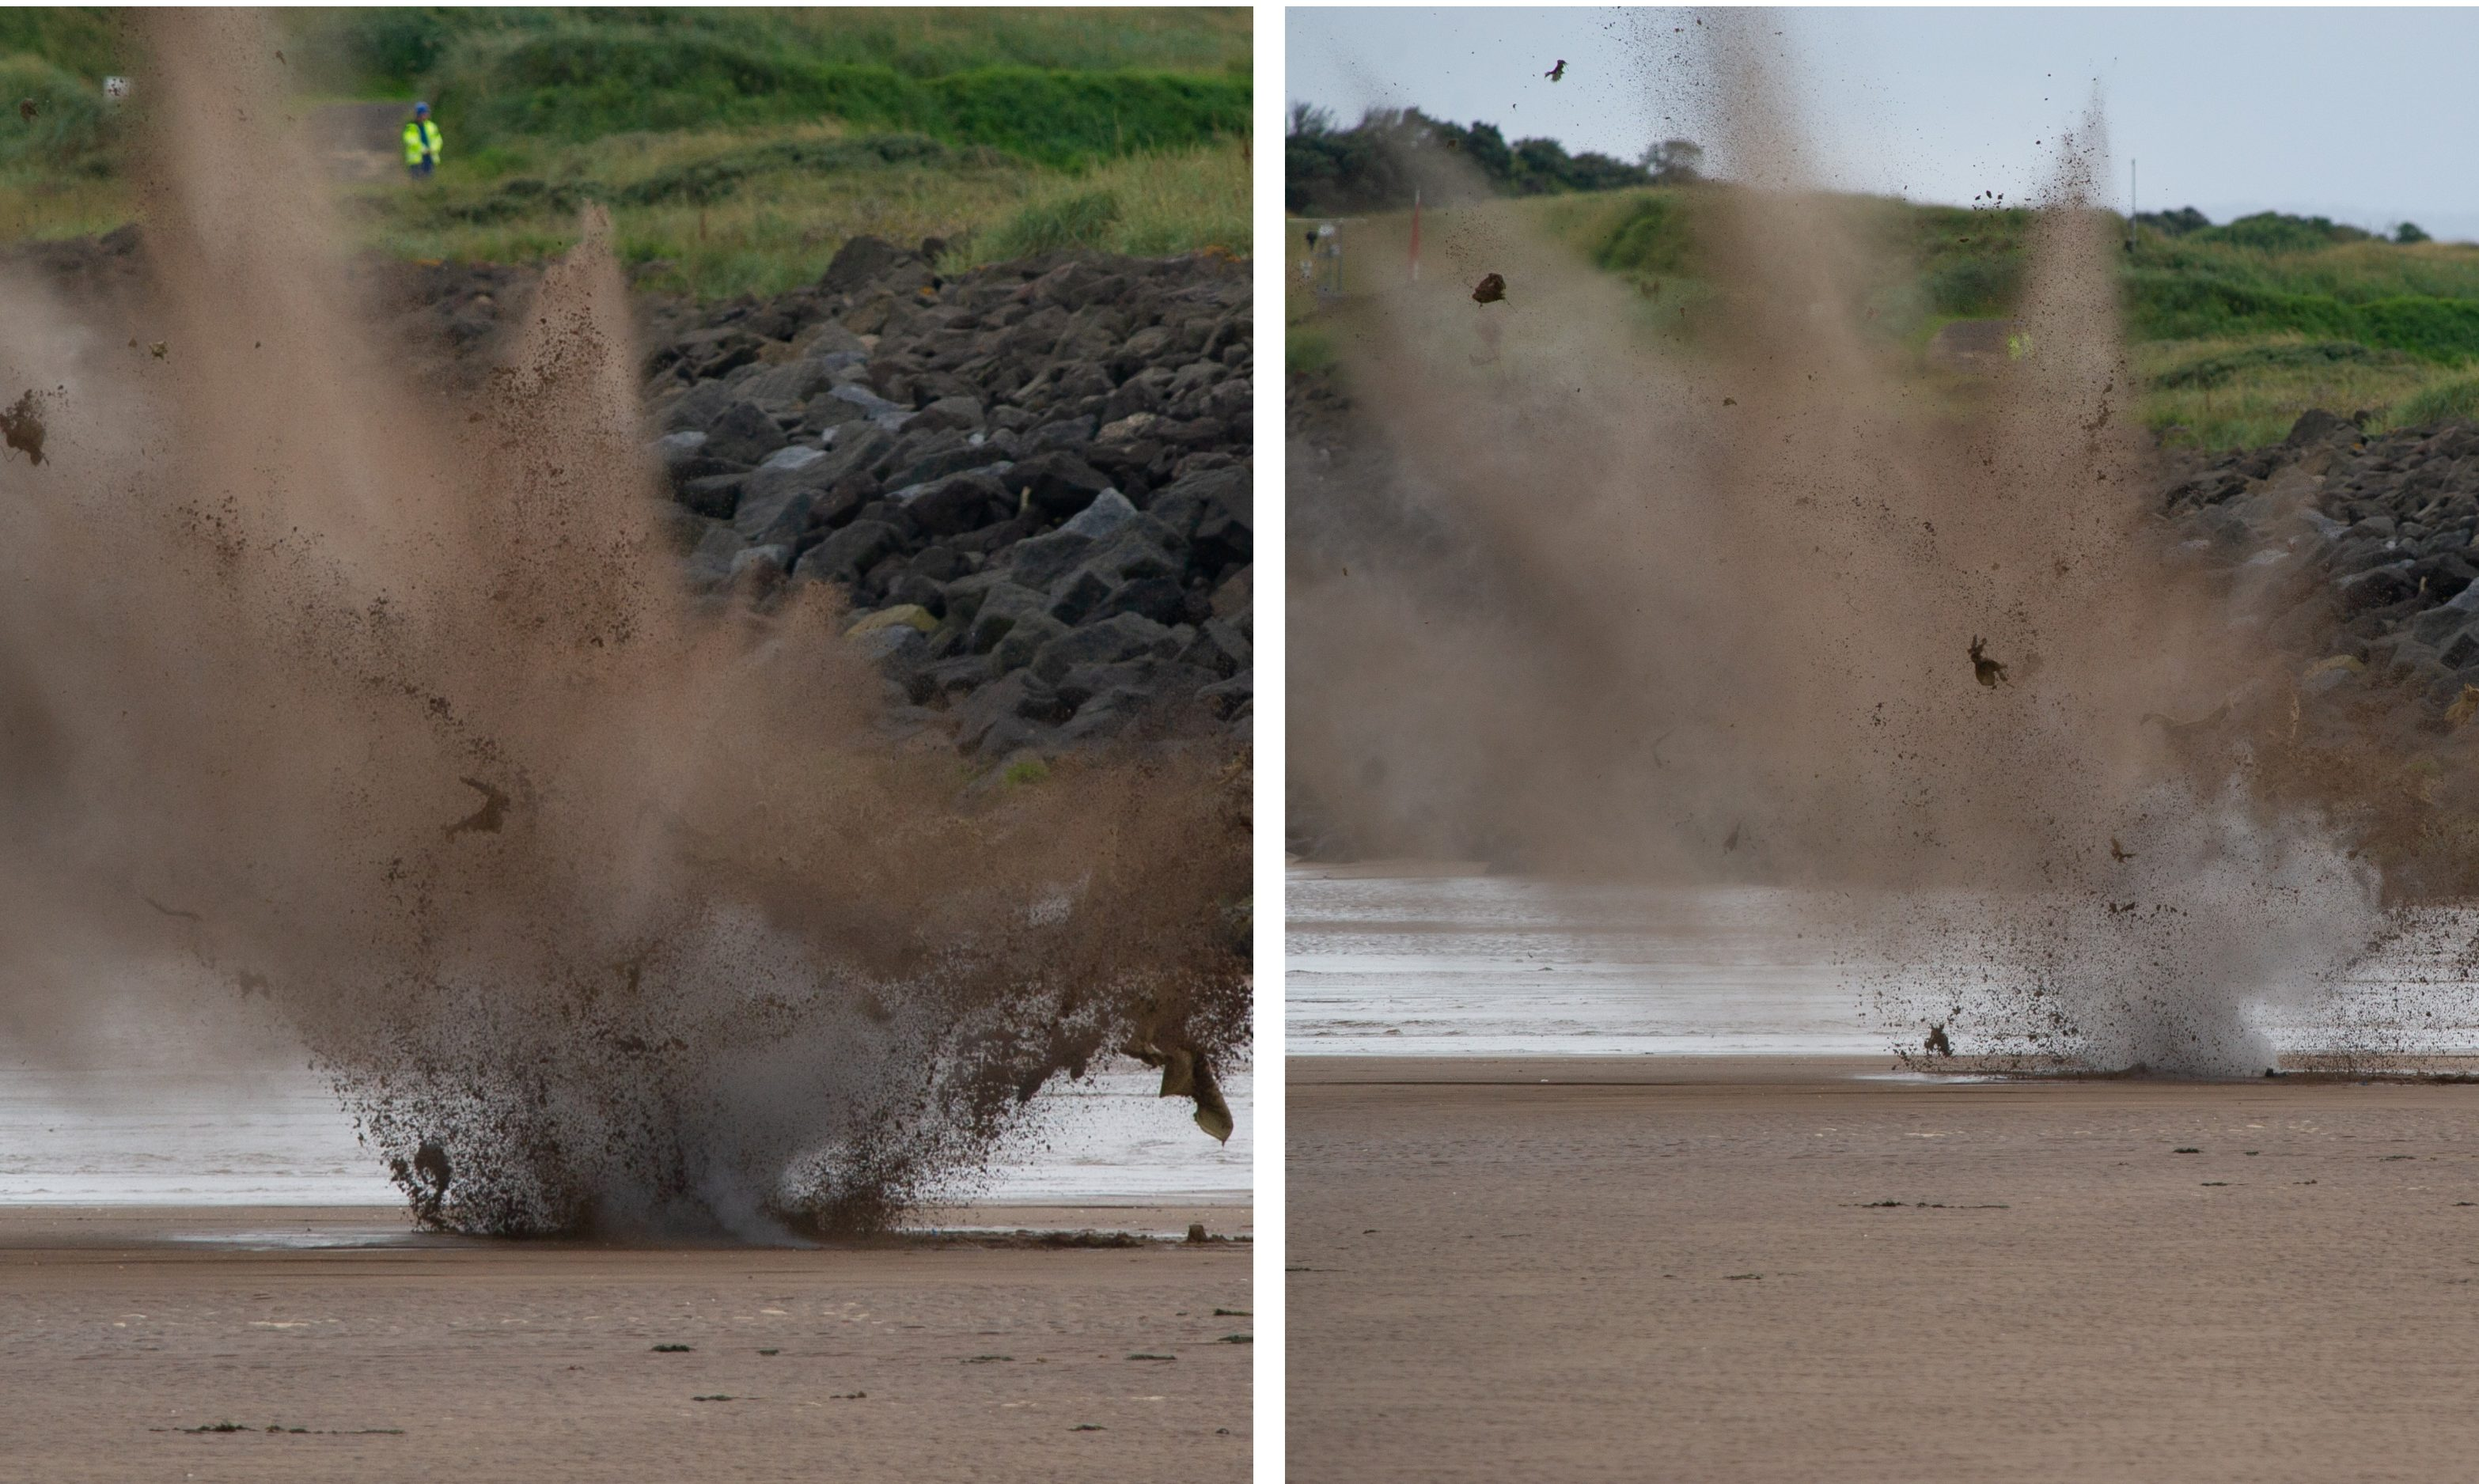 The controlled explosion on Carnousite beach. Photos and video by Courier photographer Kim Cessford.